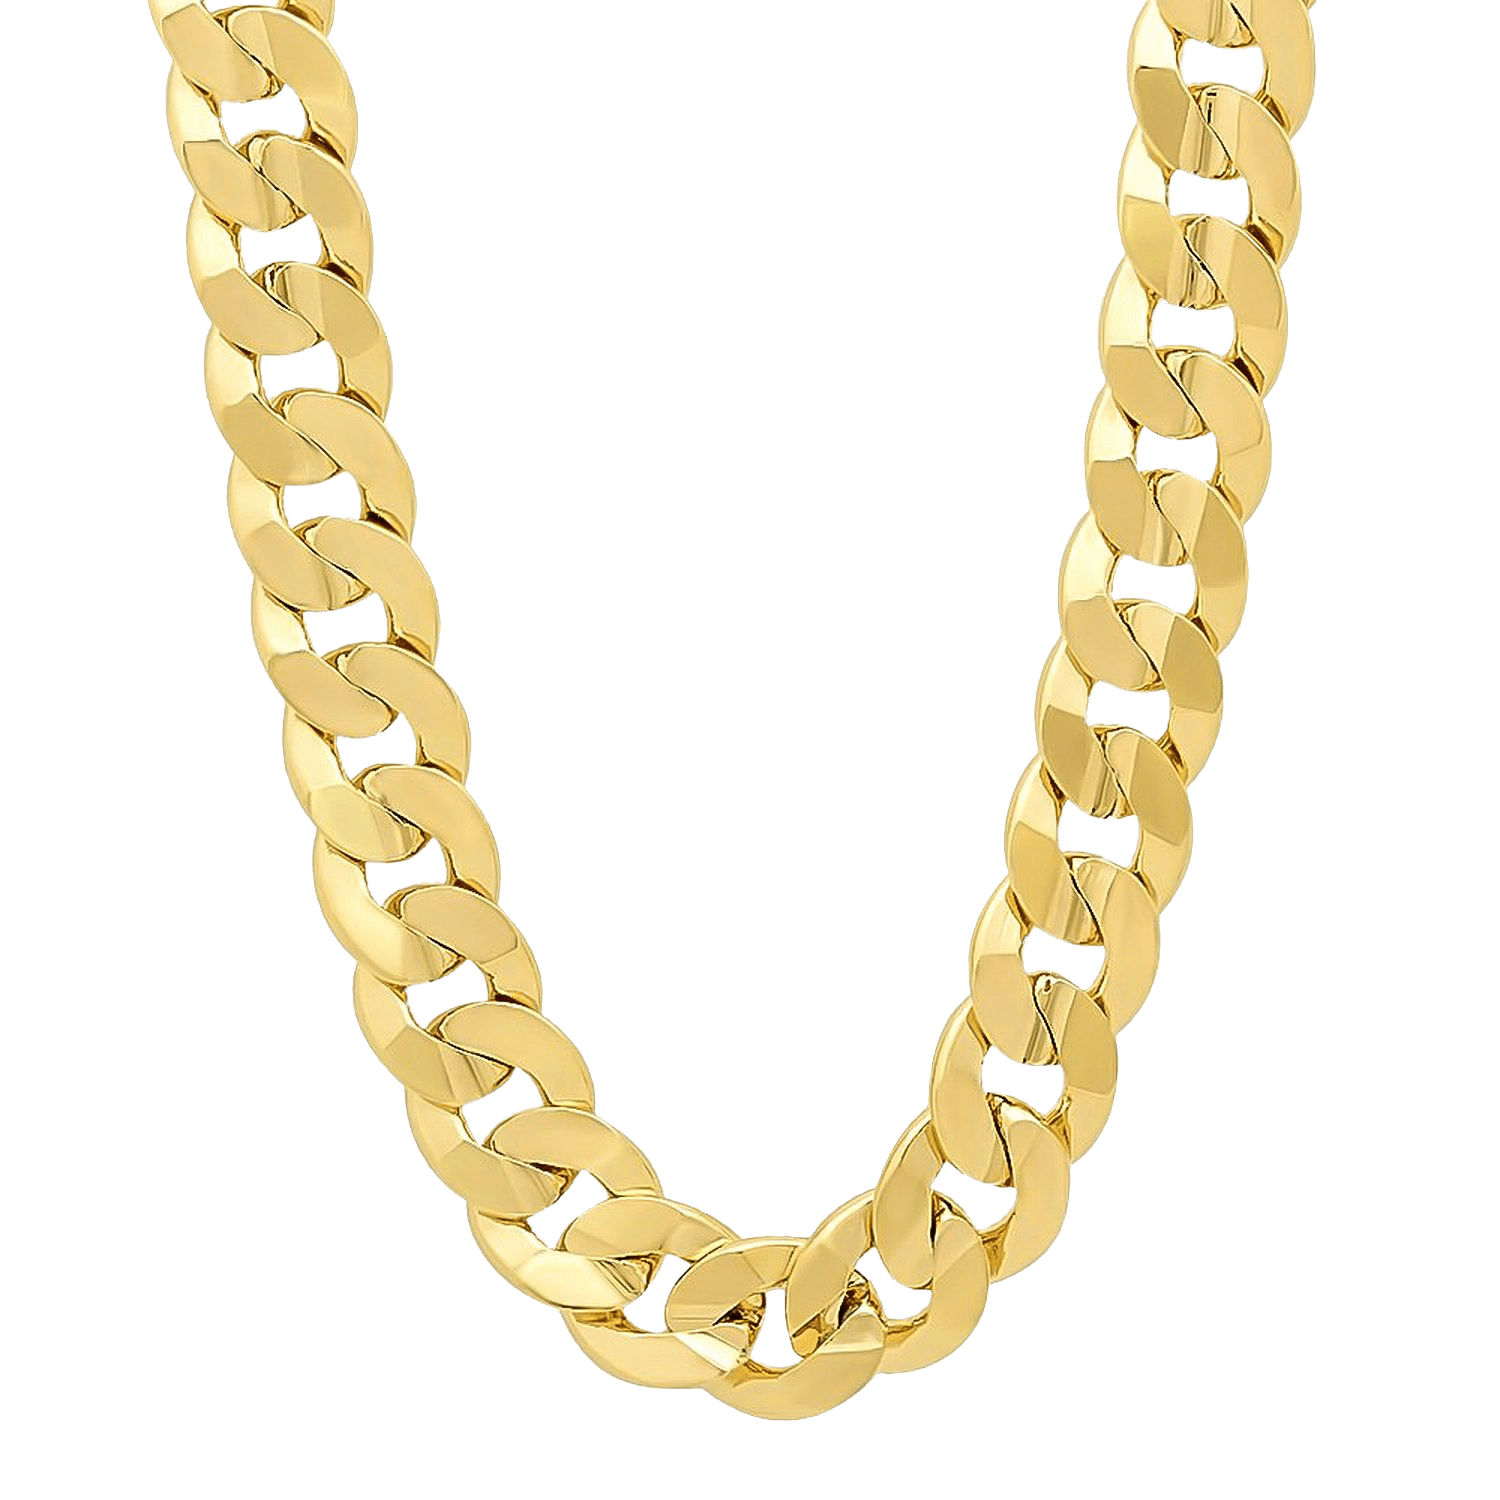 Thug Life Heavy Gold Chain Transparent Png Stickpng Gold Chains Chain Gold